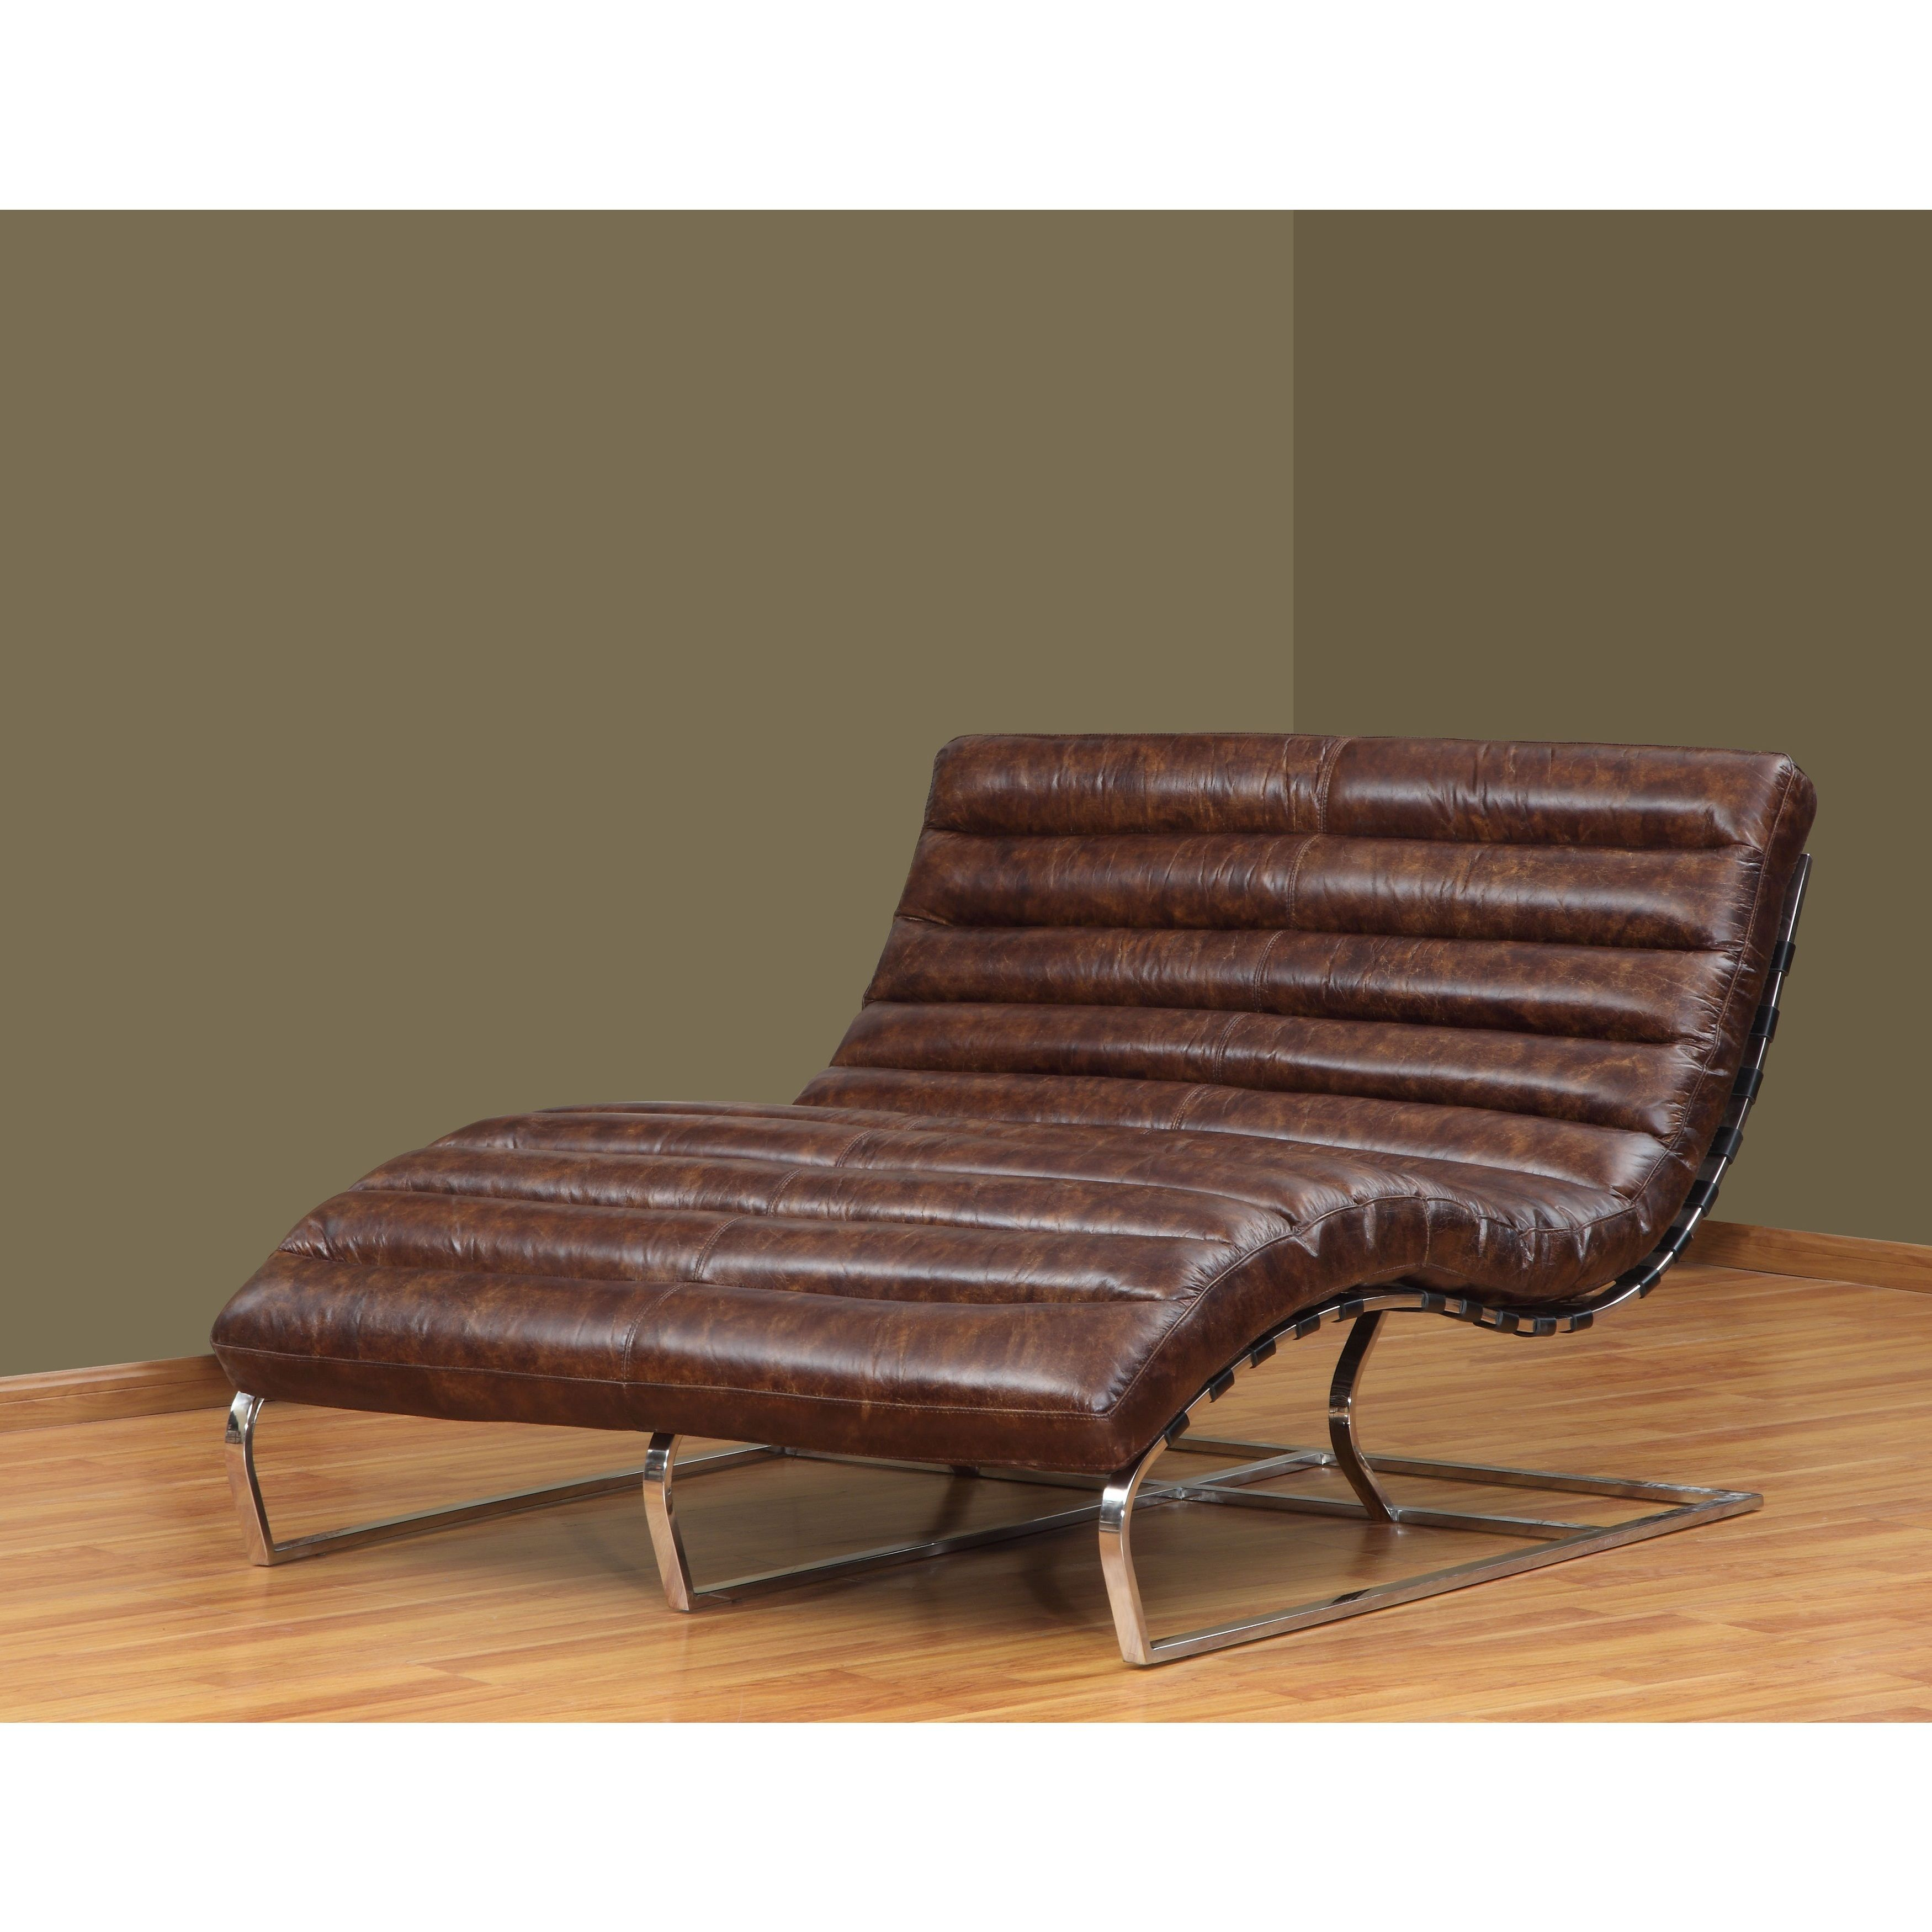 l double chaise chair leather cigar brown vintage chromed steel frame unique in home u0026 garden furniture sofas loveseats u0026 chaises